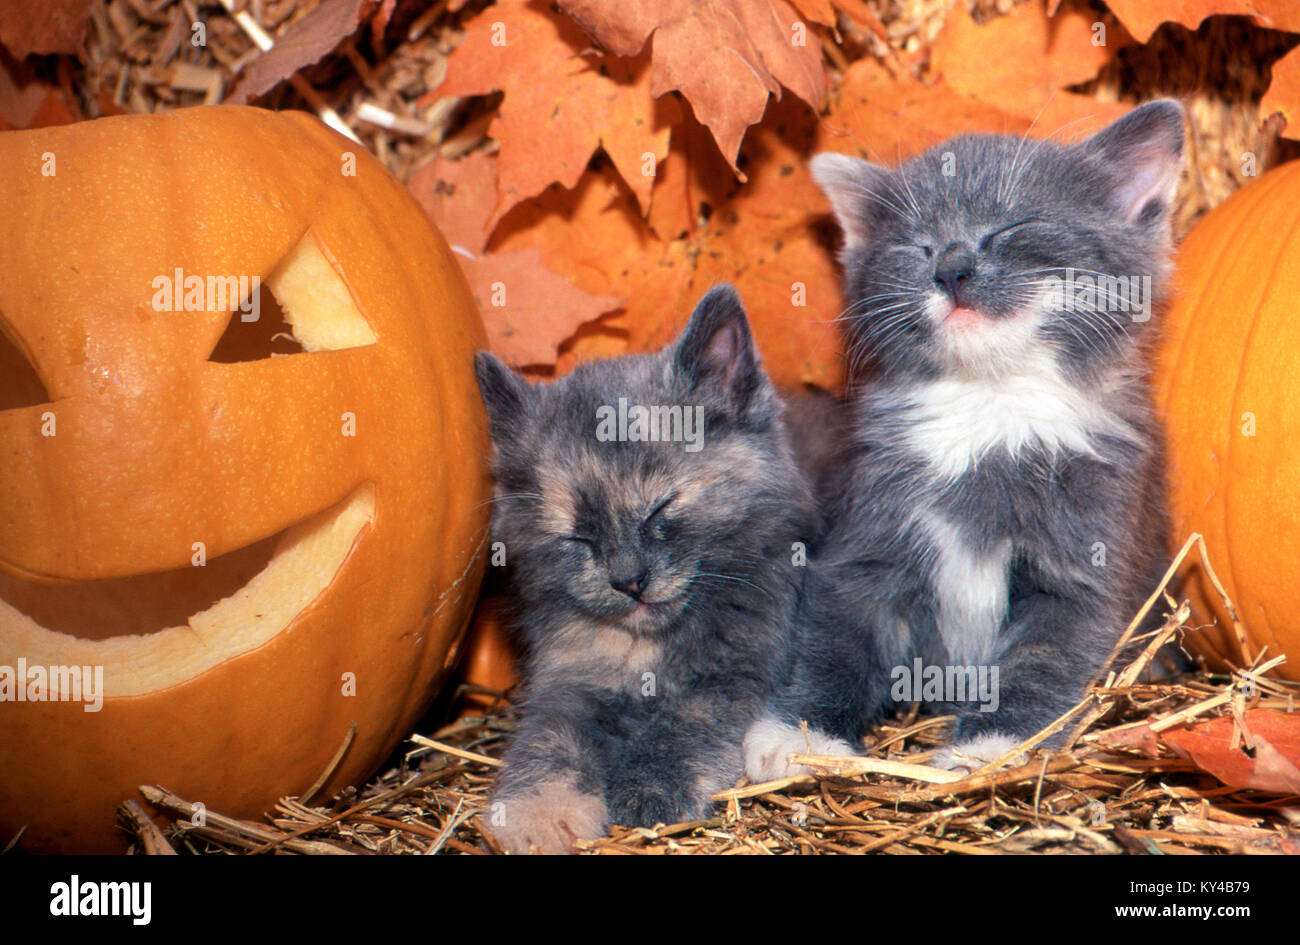 Two grey kittens, Felis catus, asleep by jack-o-lantern, Missouri - Stock Image